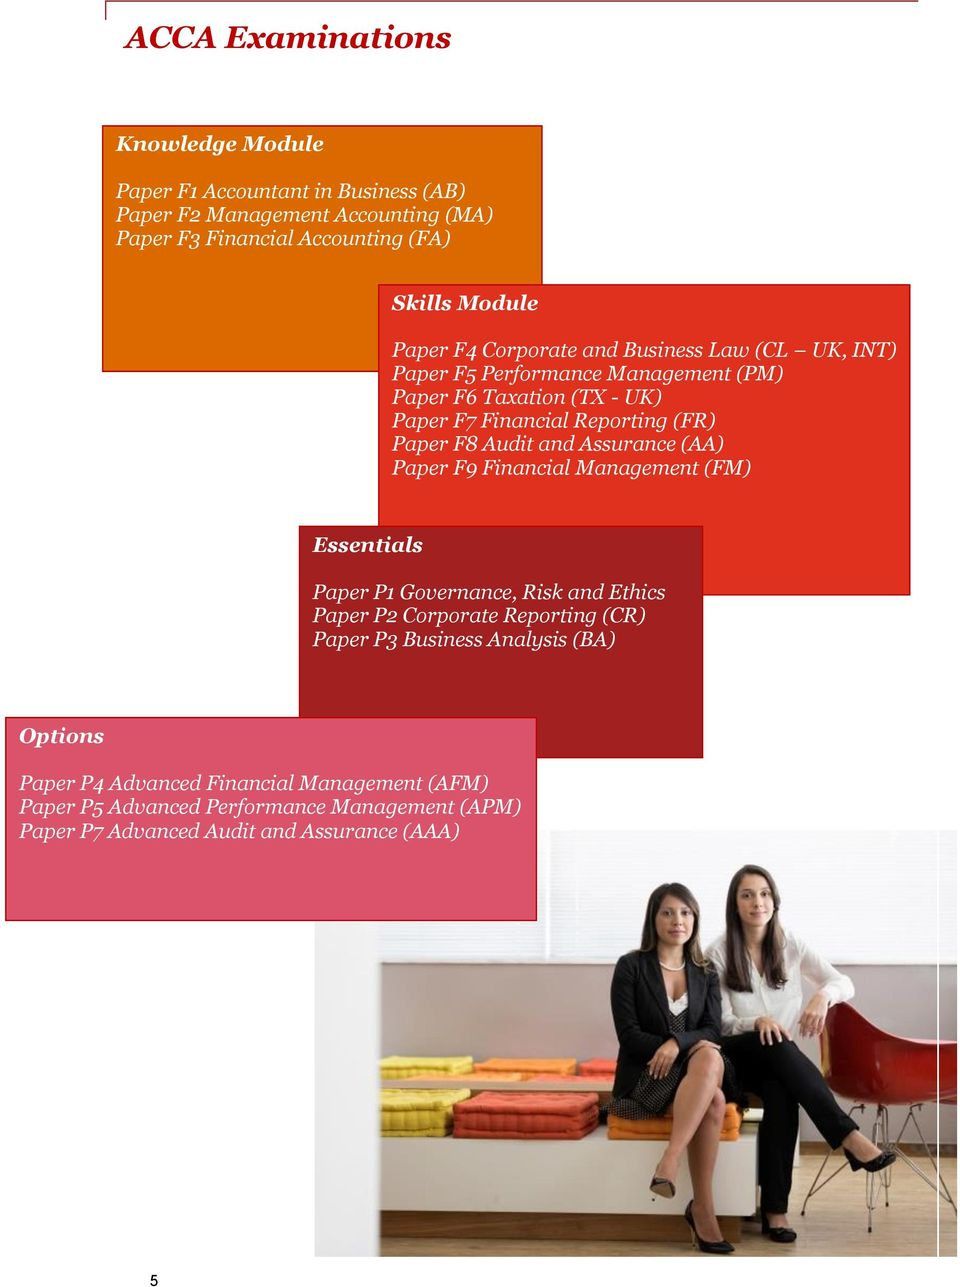 Acca paper f7 pdf - Acca Financial Reporting Questions And